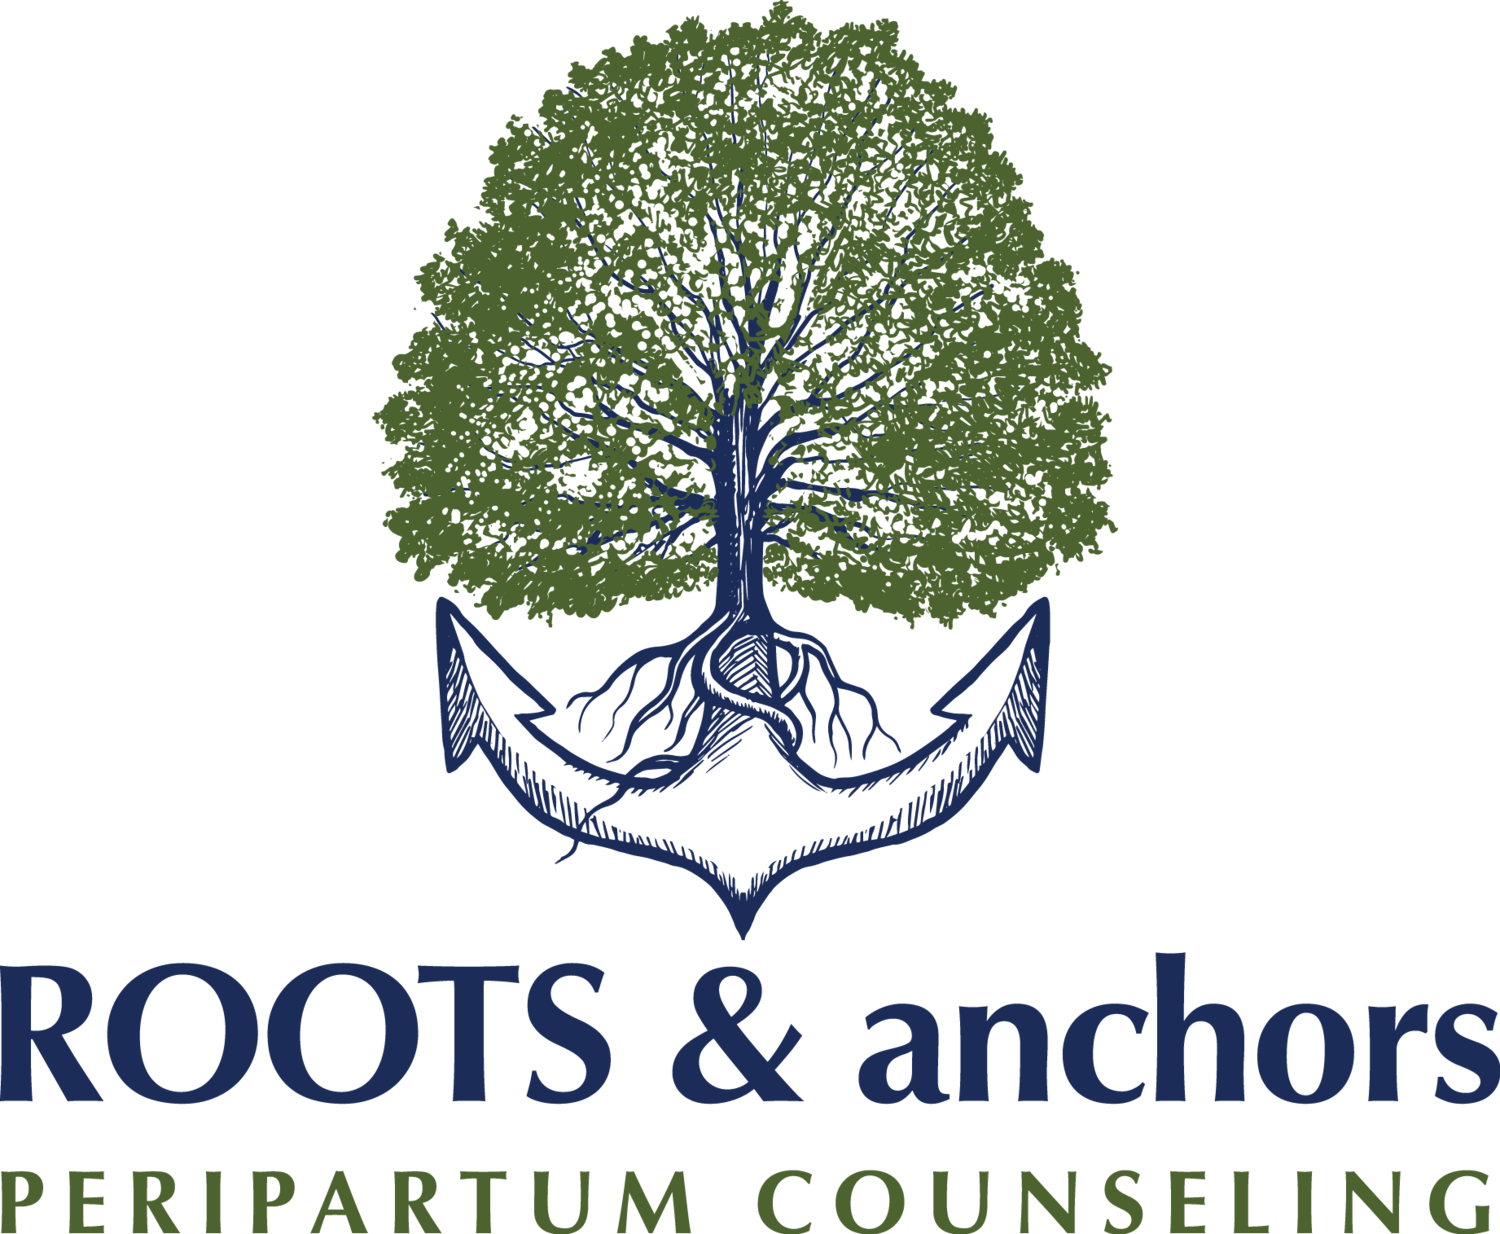 Roots and Anchors peripartum counseling